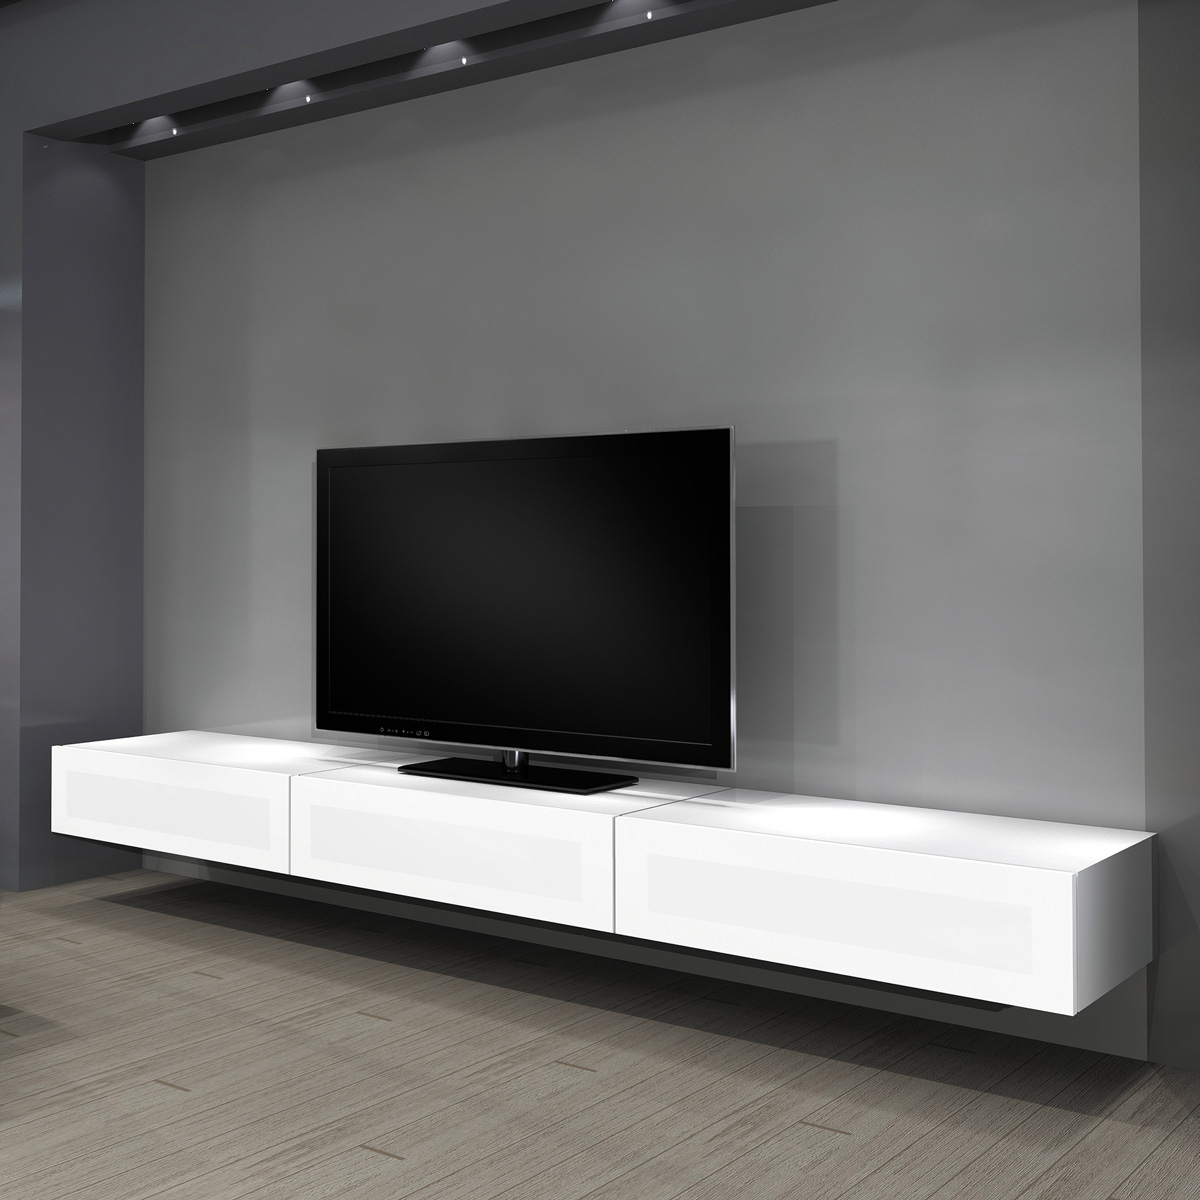 Modern Wall Mount Tv Stands With Recent Furniture: Modern Design Living Room With Ikea Wall Mounted Tv (View 9 of 20)